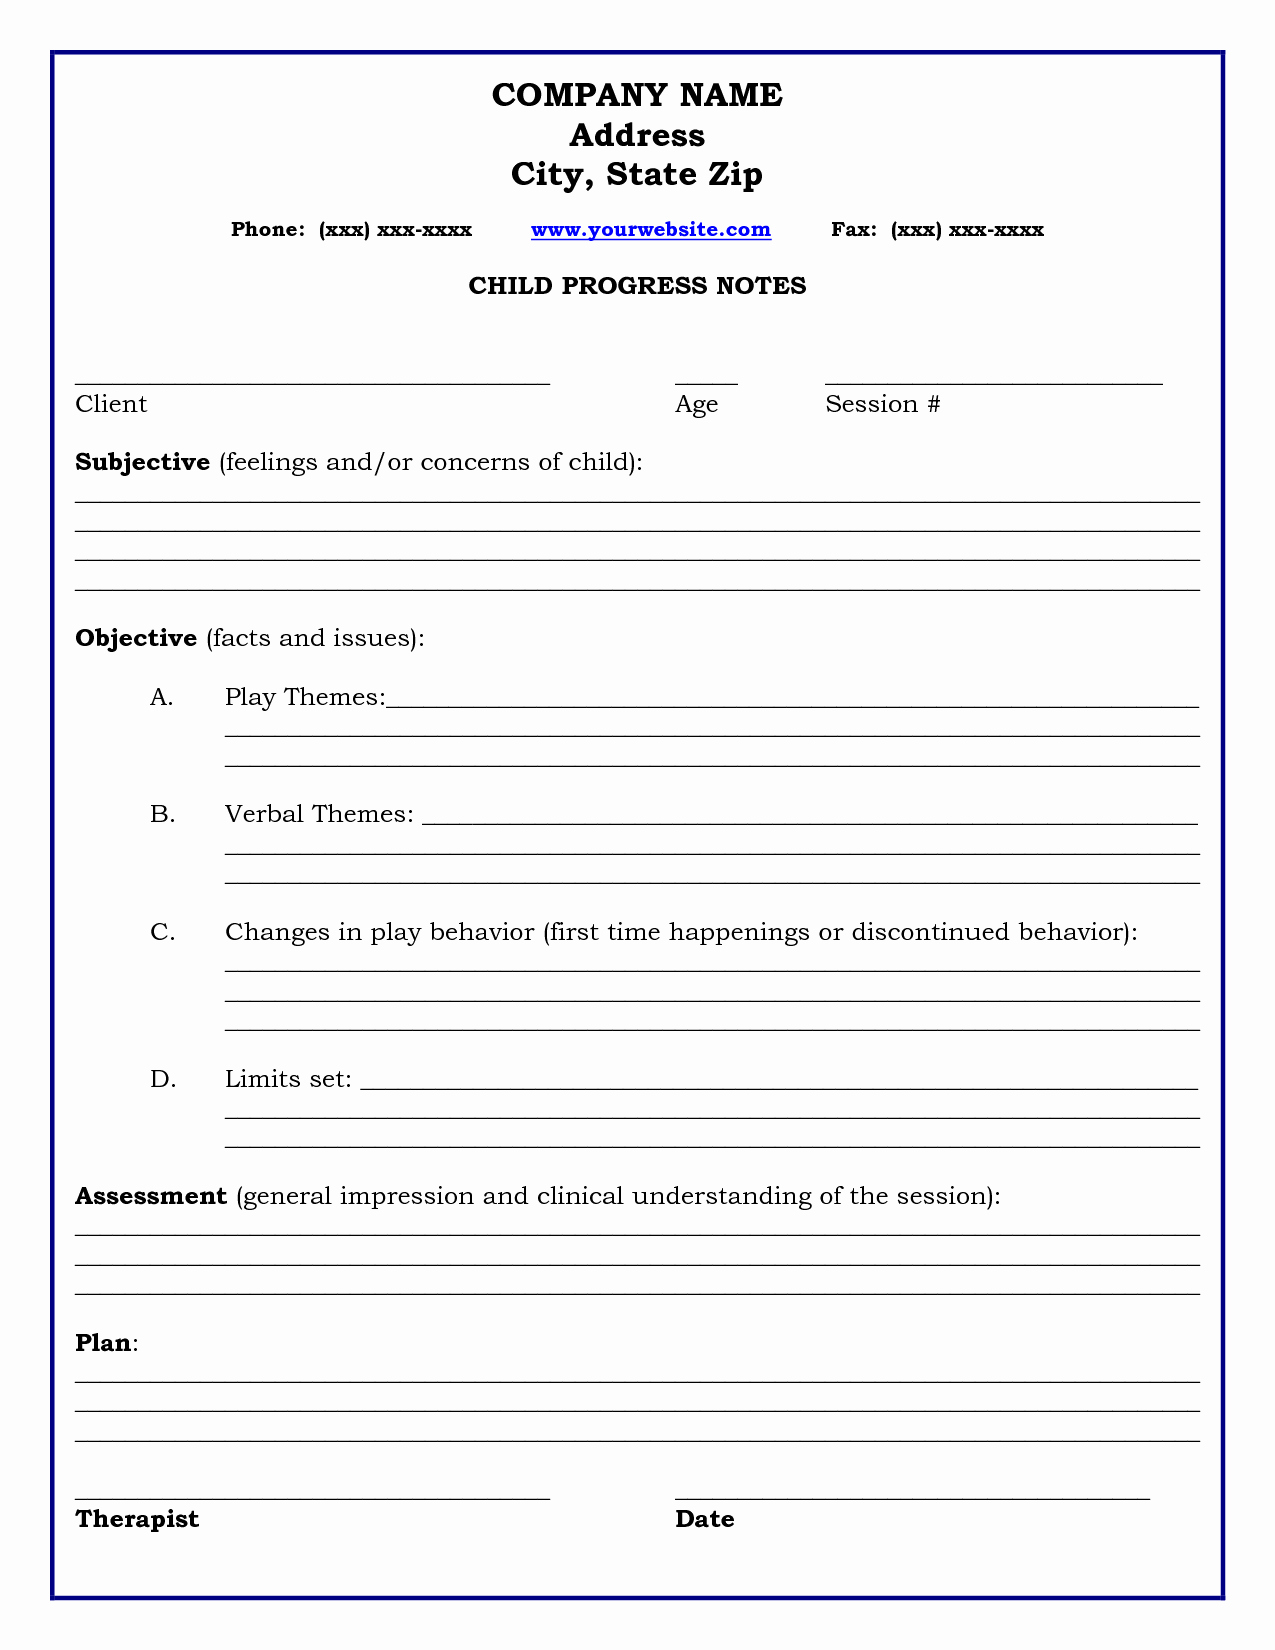 Group therapy Notes Template Best Of therapy Progress Note Template